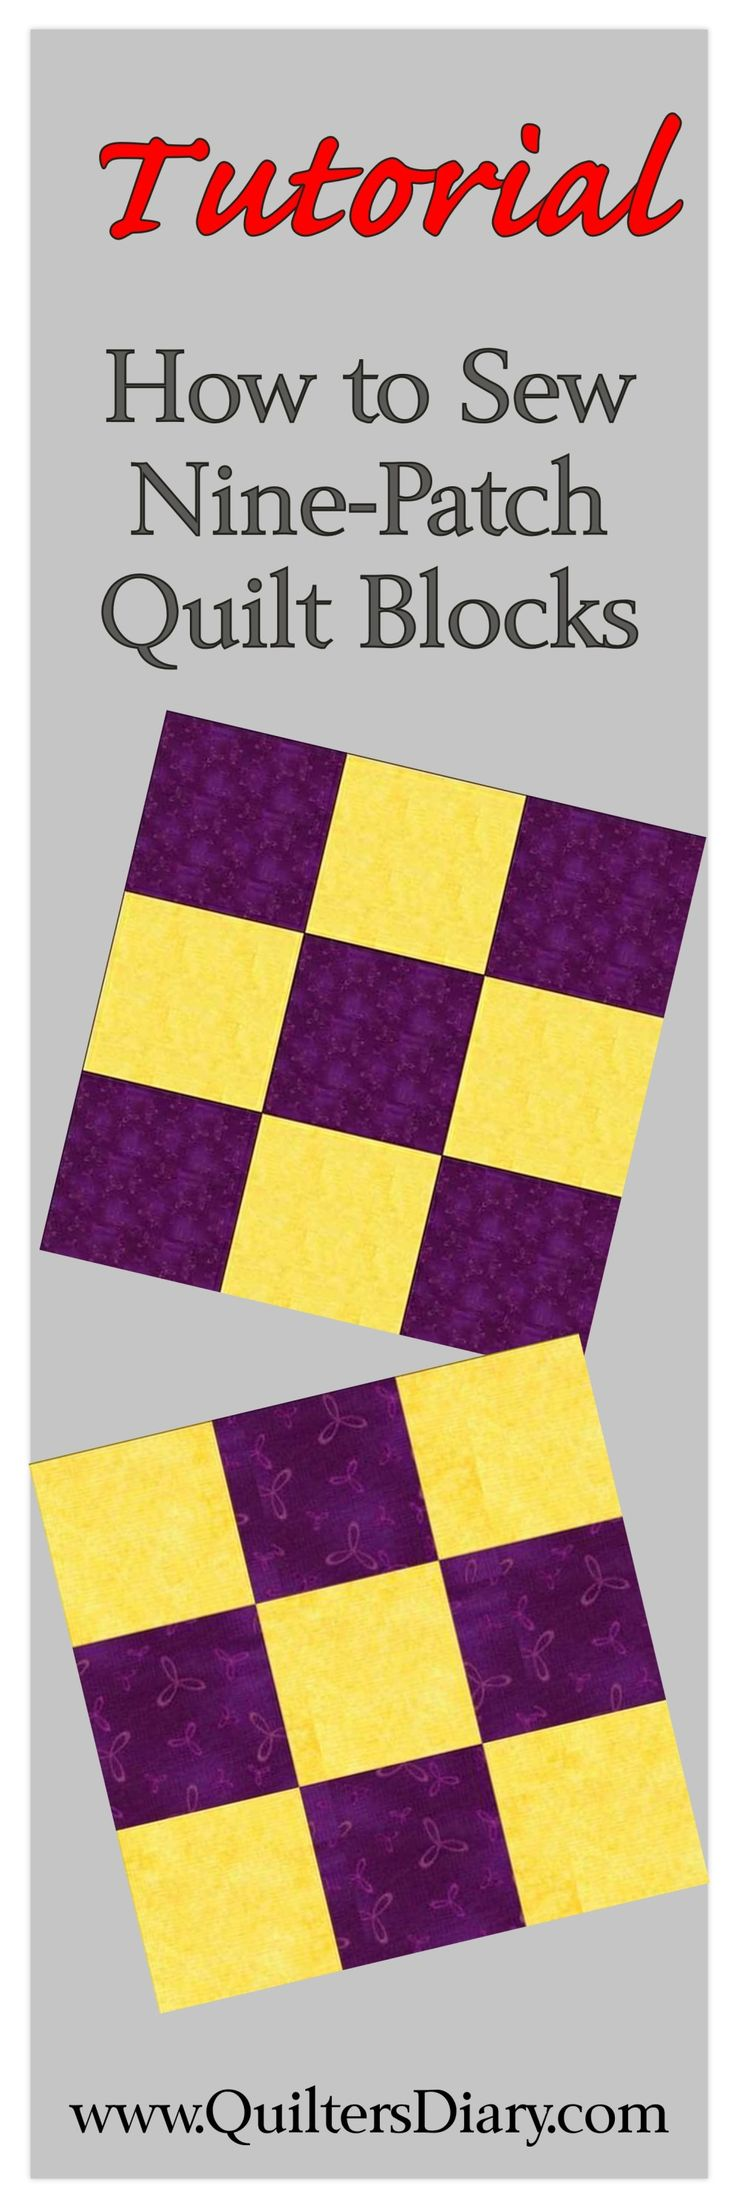 Useful Information and Inspiration for new quilters – Kimberly Clarkson